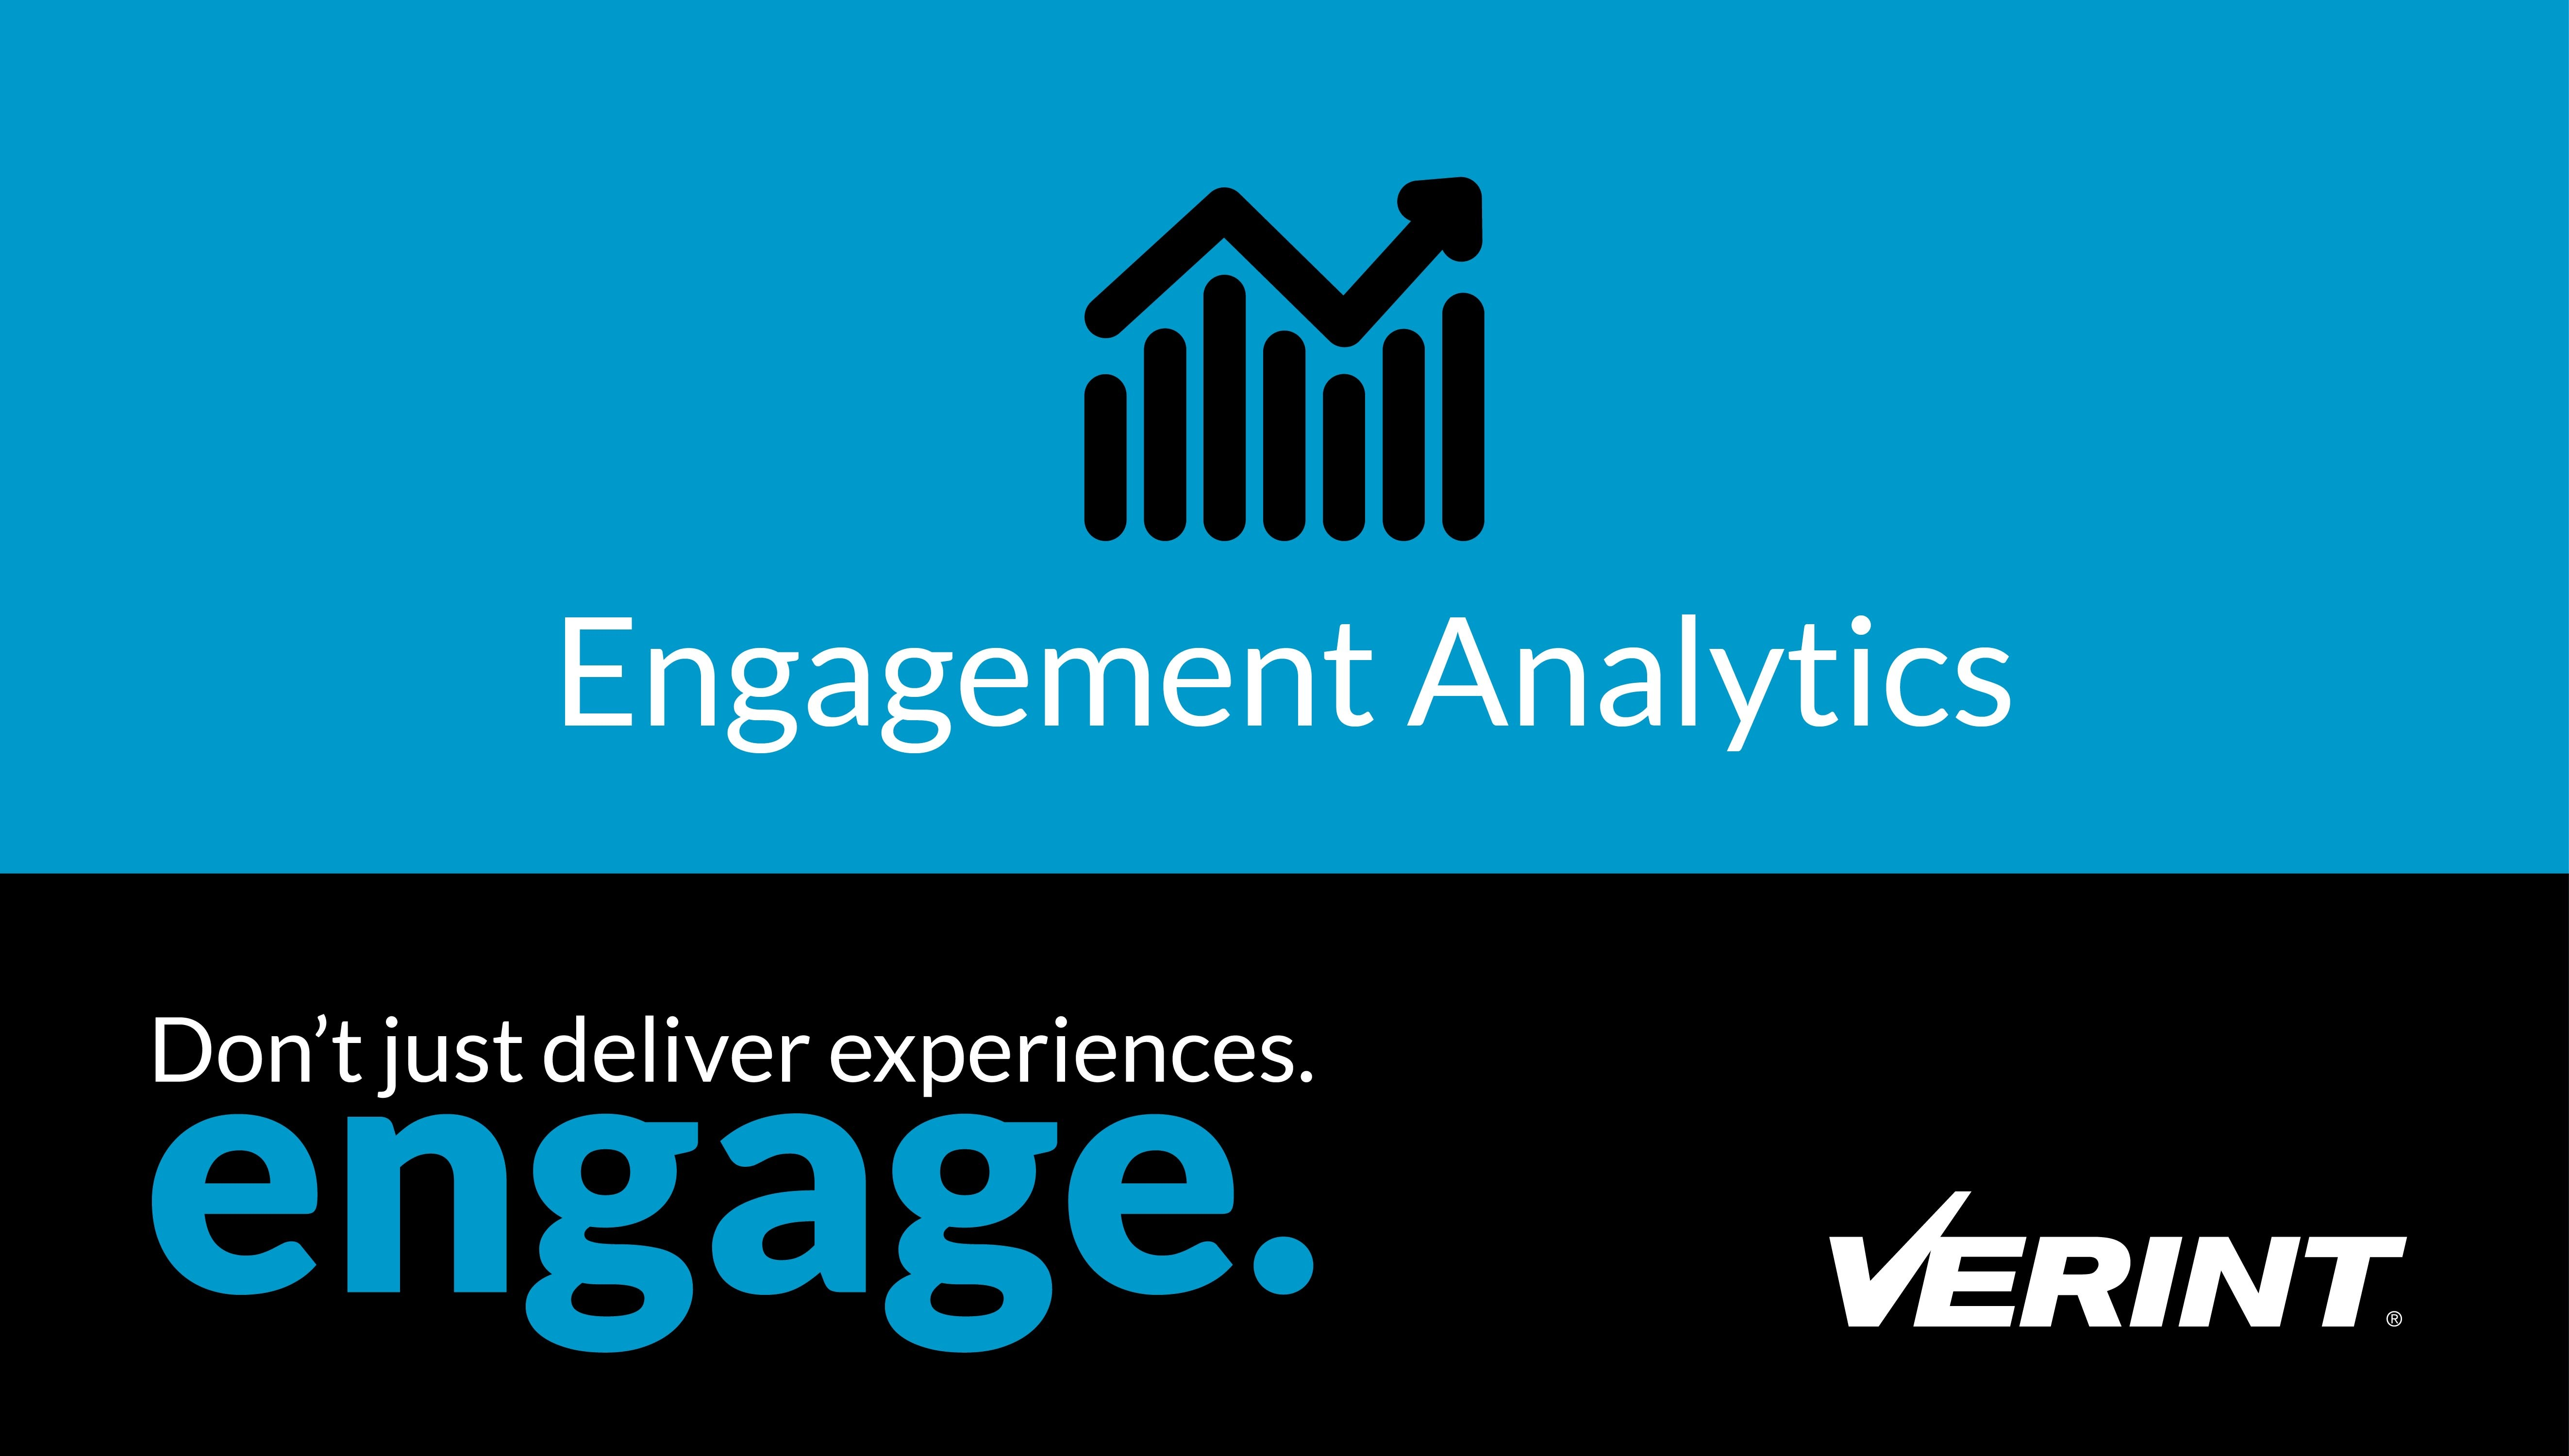 Verint Engagement Analytics